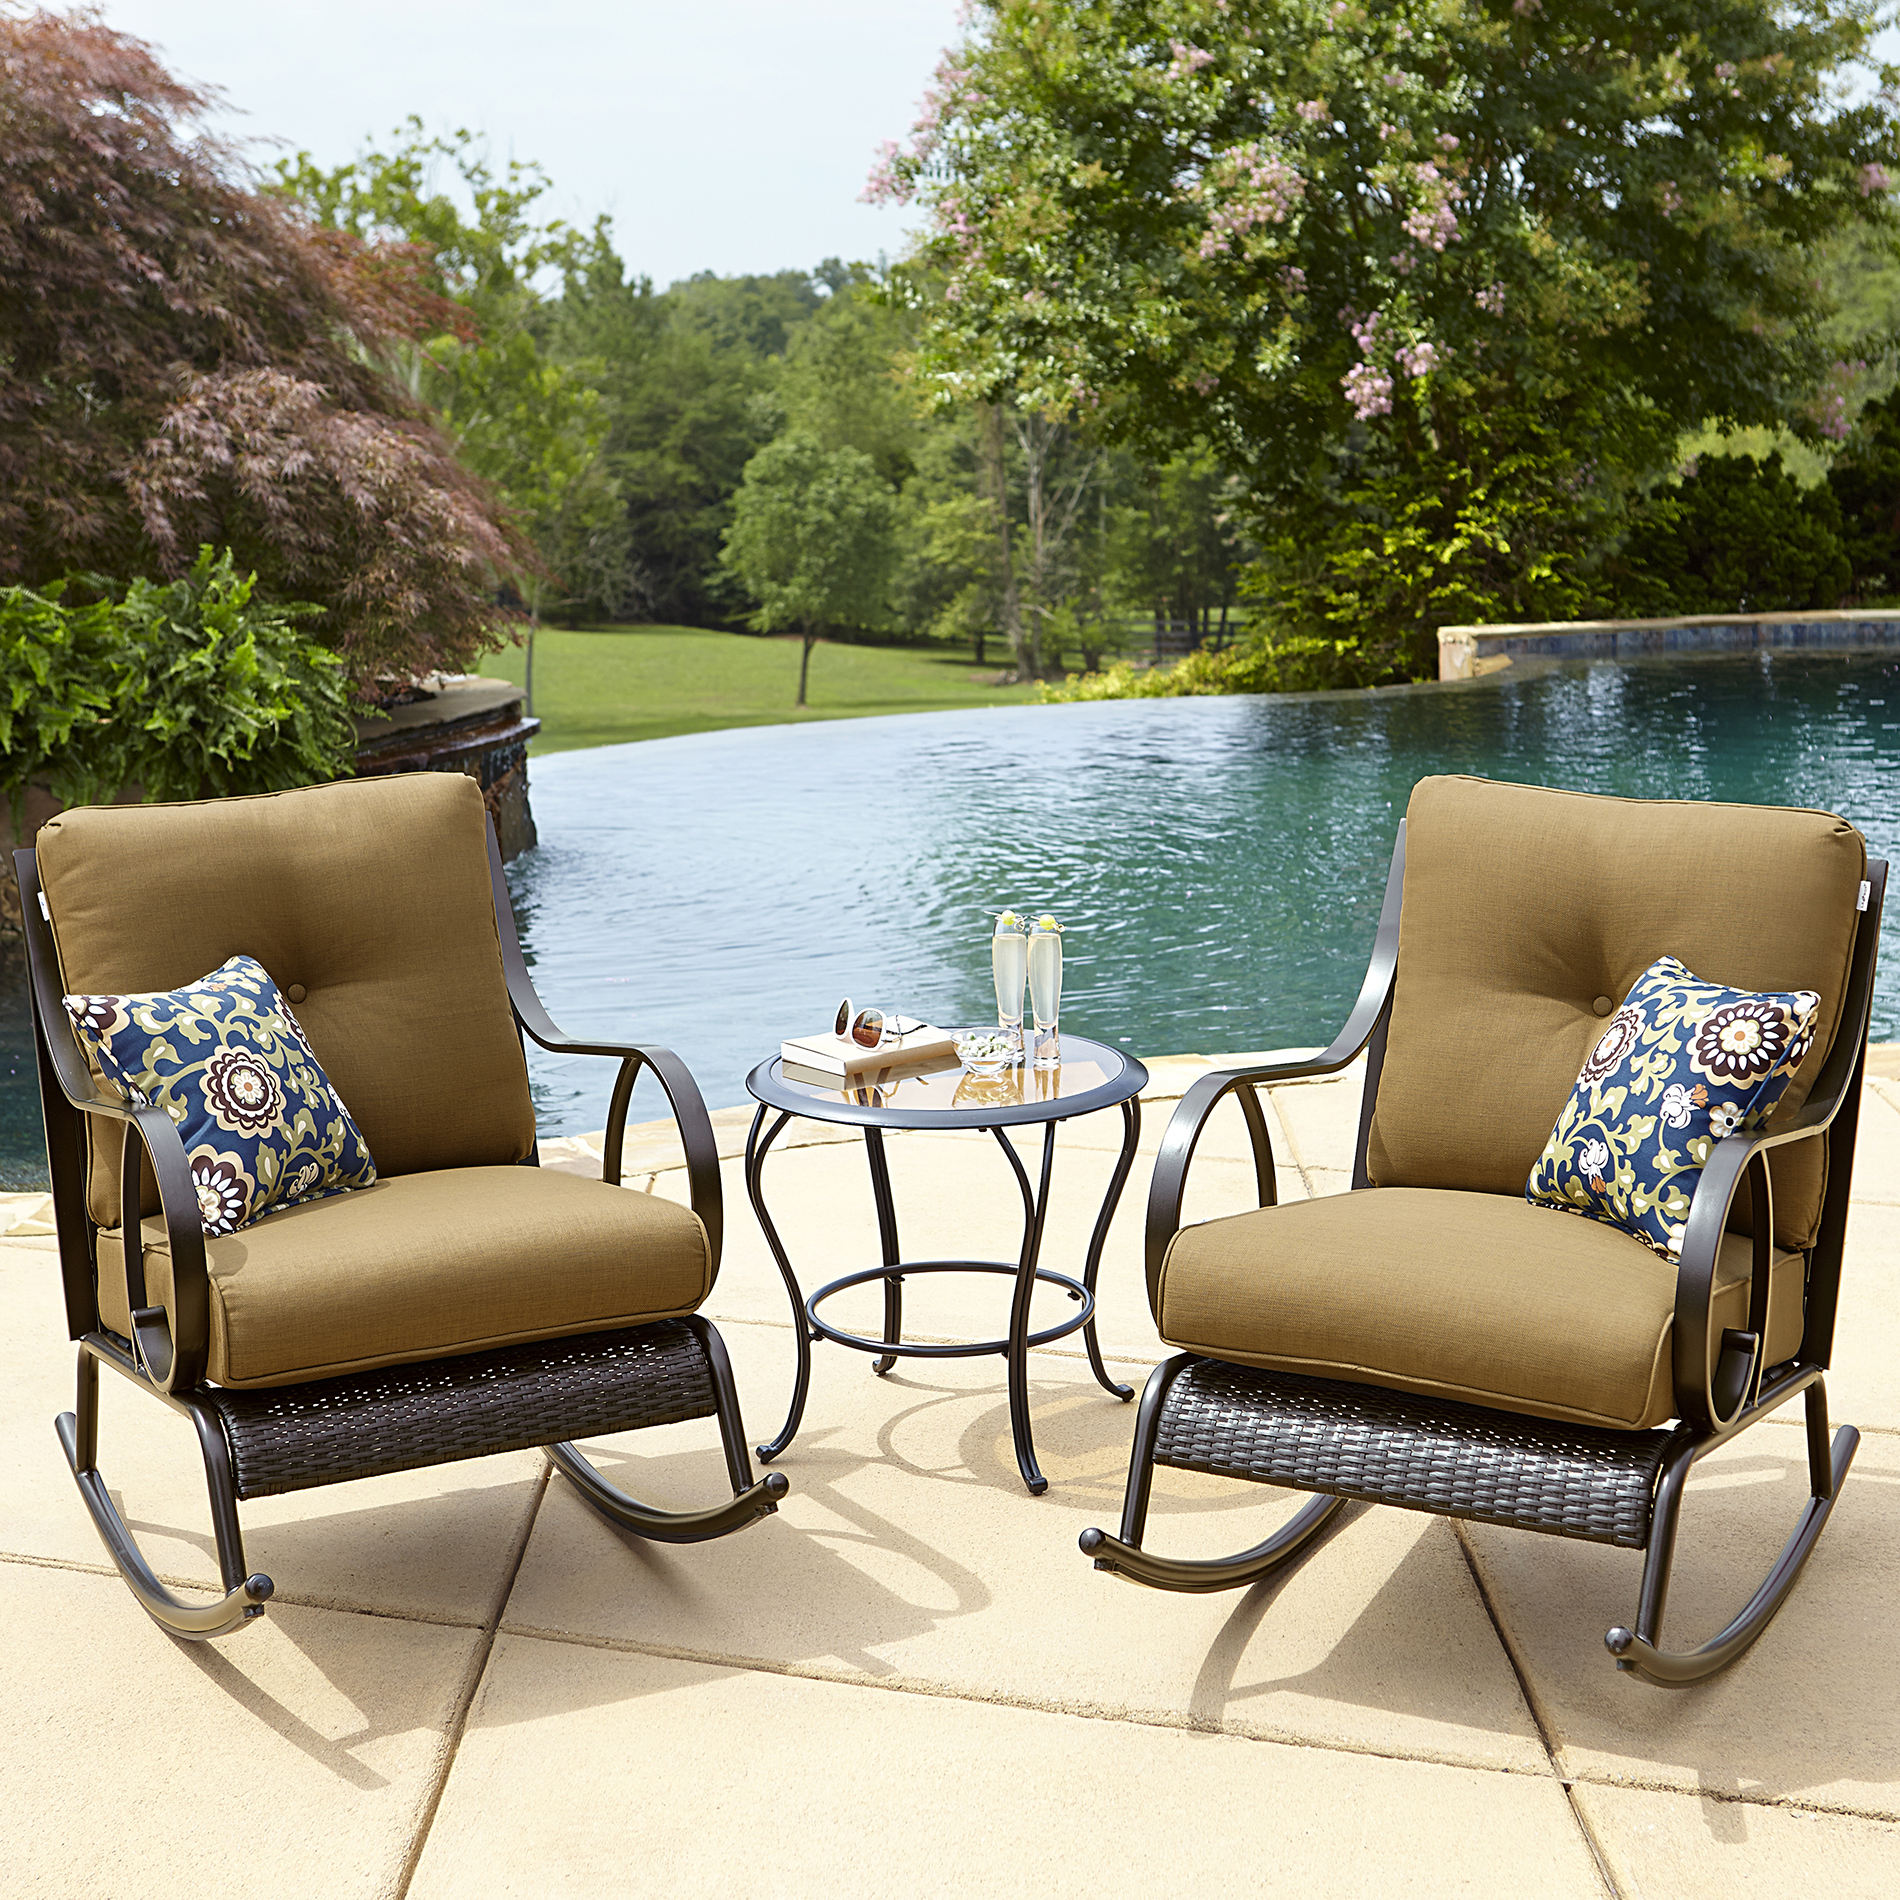 La-boy Outdoor Avery 3pc Bistro Set - Gold Limited